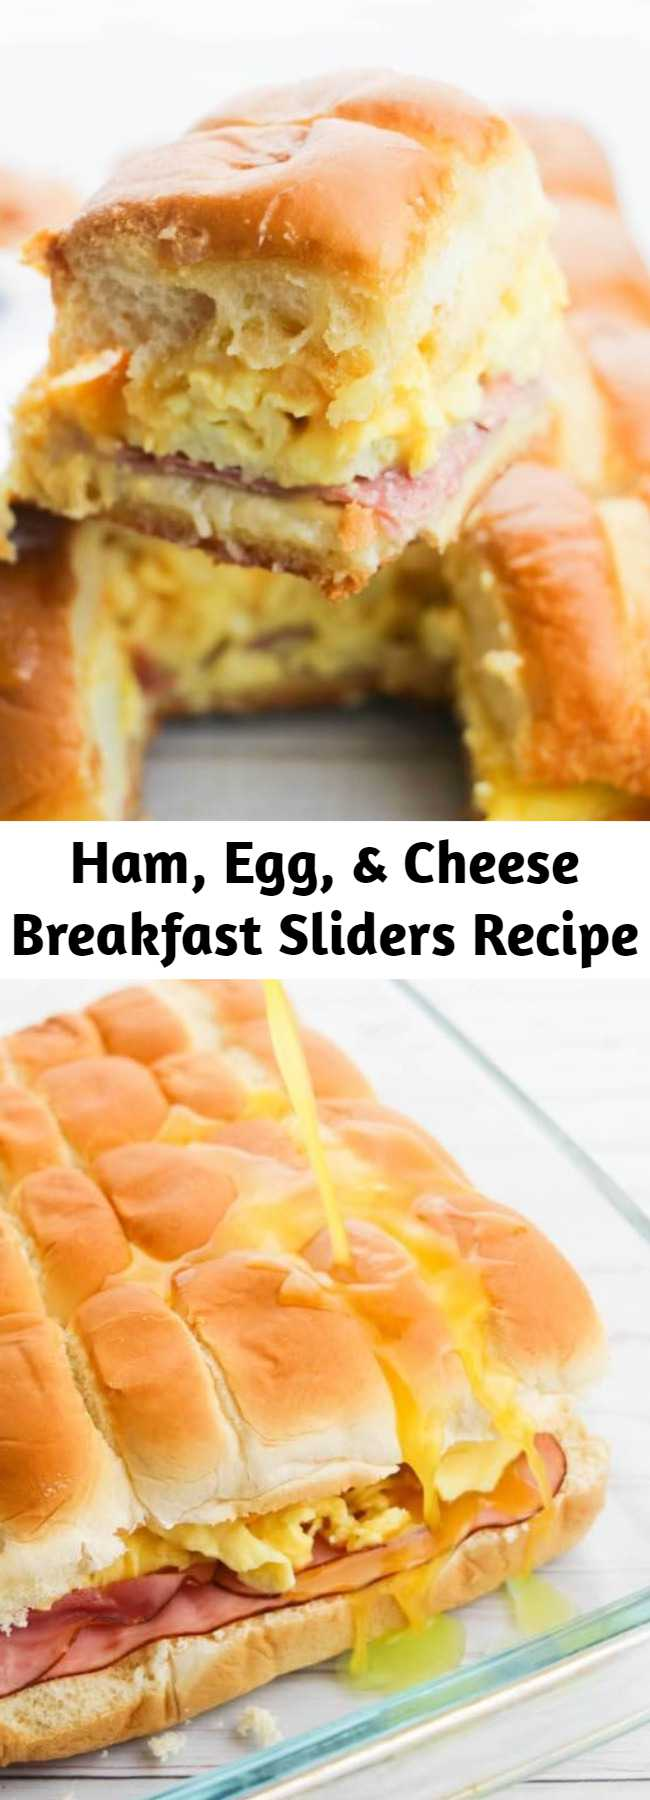 Ham, Egg, & Cheese Breakfast Sliders Recipe - What a way to start the day!! These delicious ham, egg and cheese breakfast sliders served warm out of the oven are sure to brighten up any morning! Perfect for holidays!